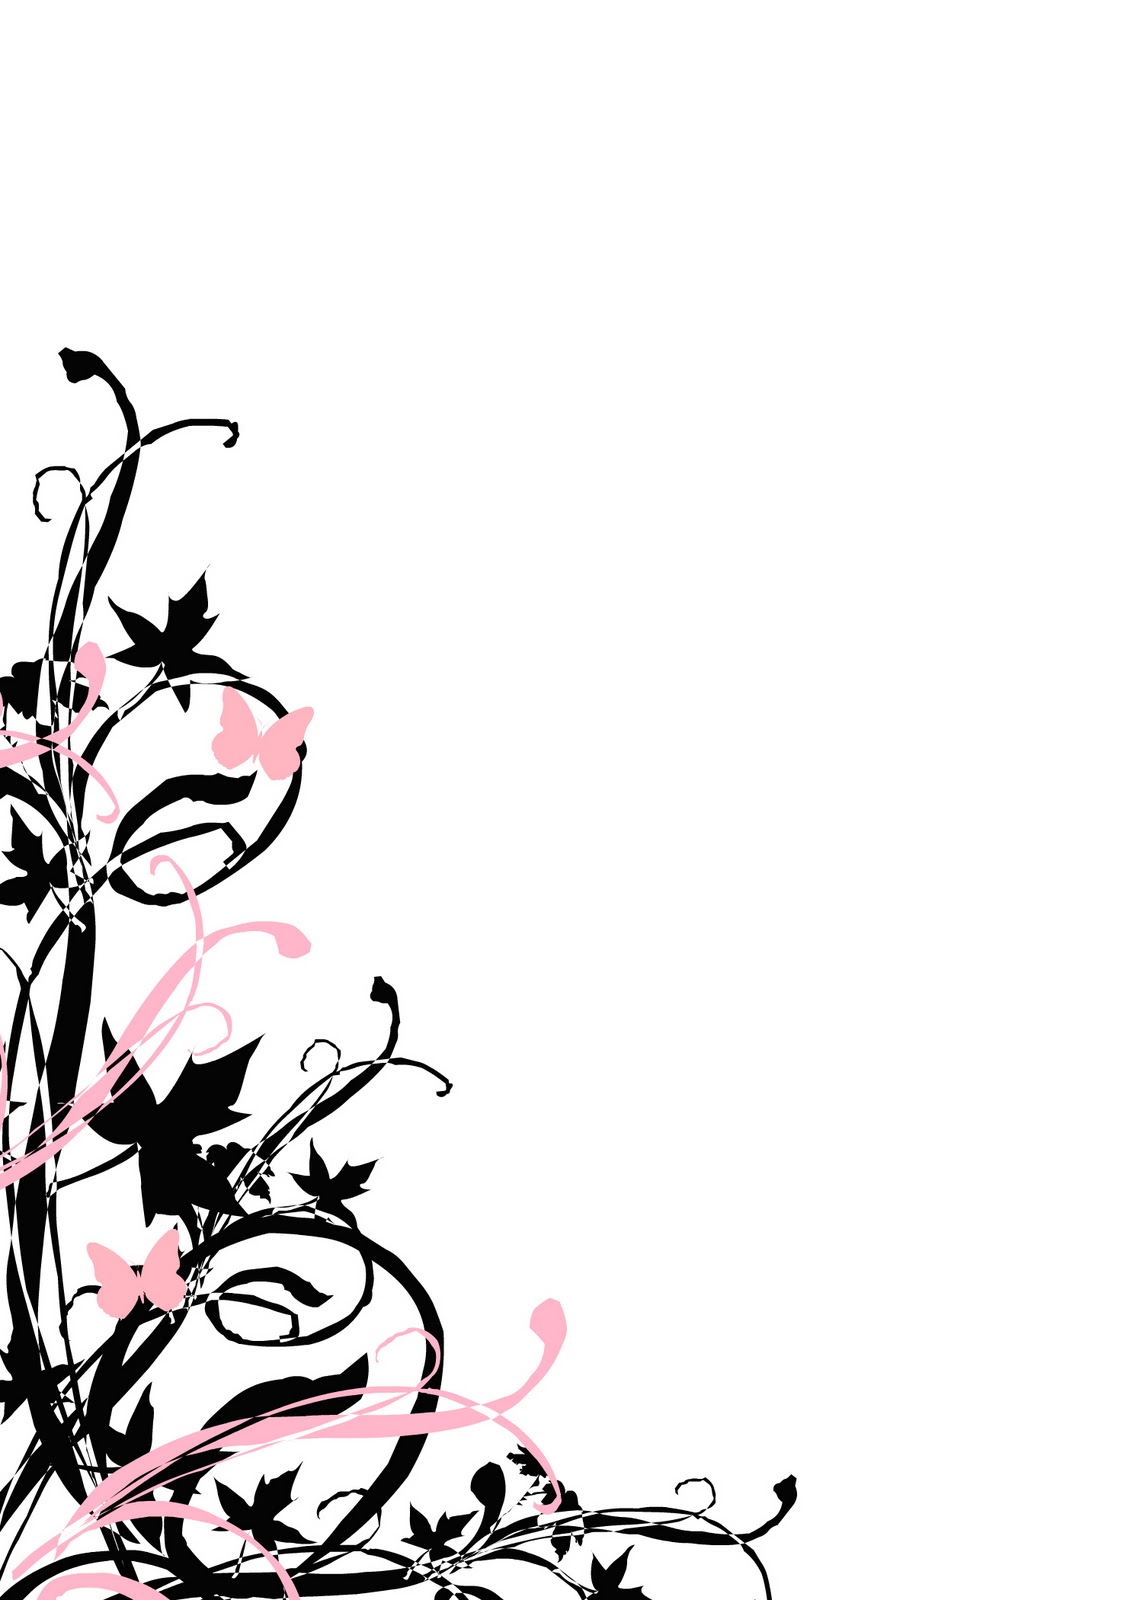 Butterfly Black And White Outline 1 Desktop Hd Background